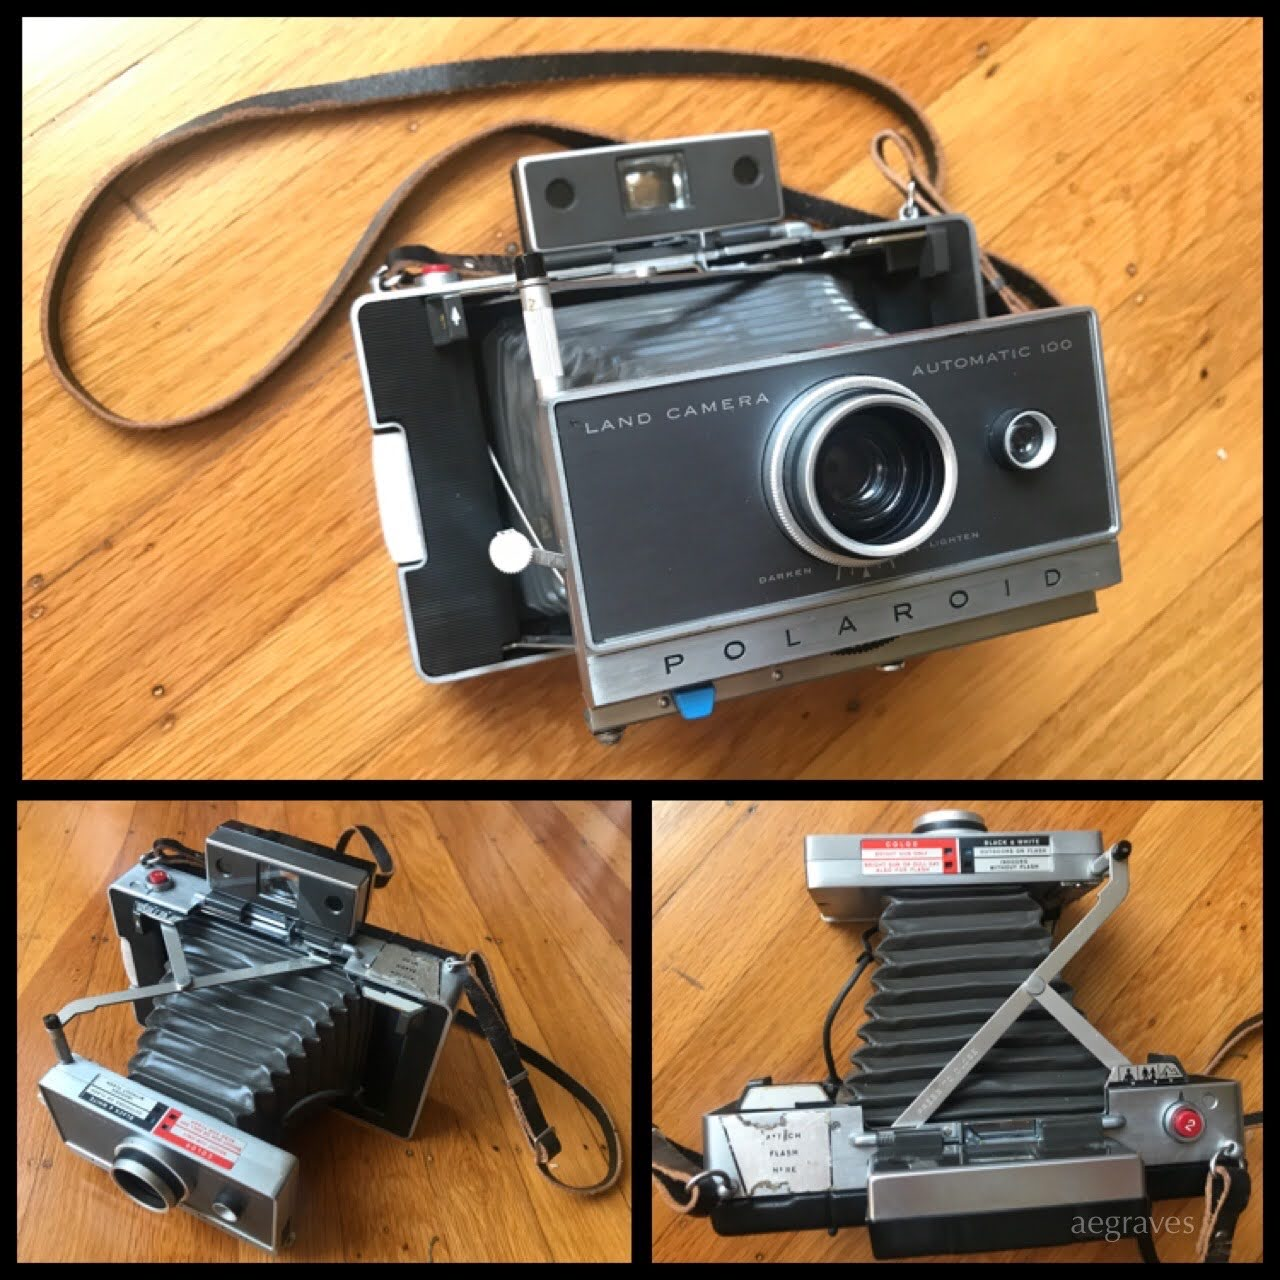 My beloved Polaroid Land Camerca